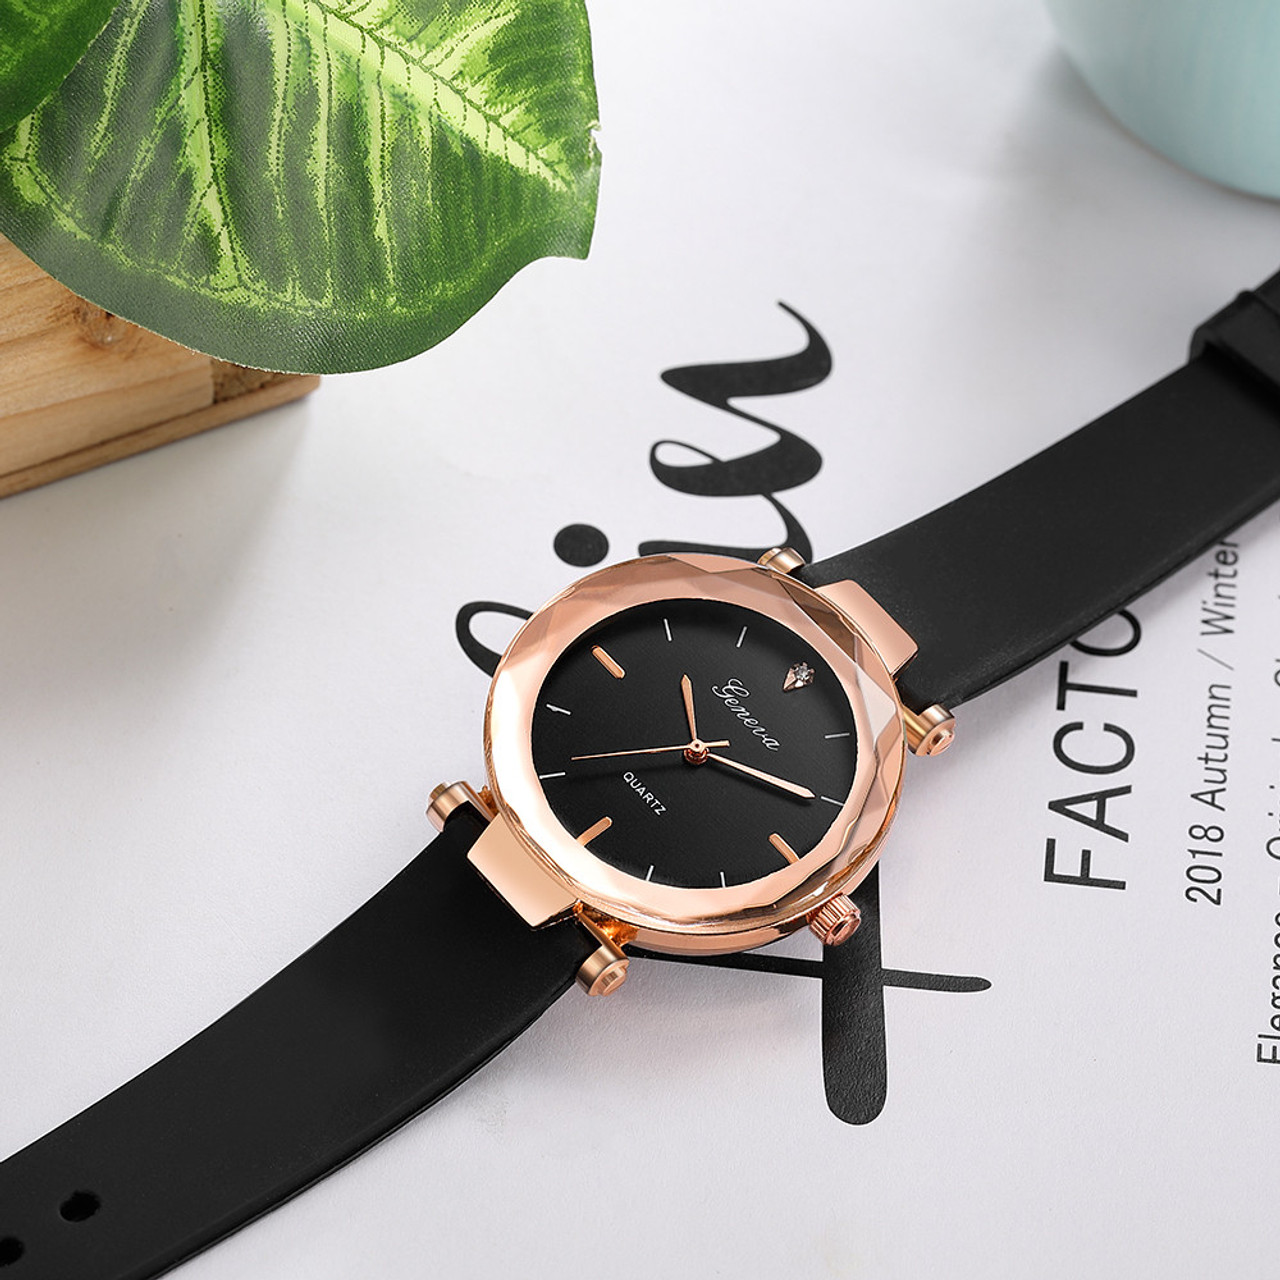 7d5bdc2b5a79 ... relojes mujer Fashion ladies wrist watches Womens clock Round glass  silicone strap wrist watch for women ...